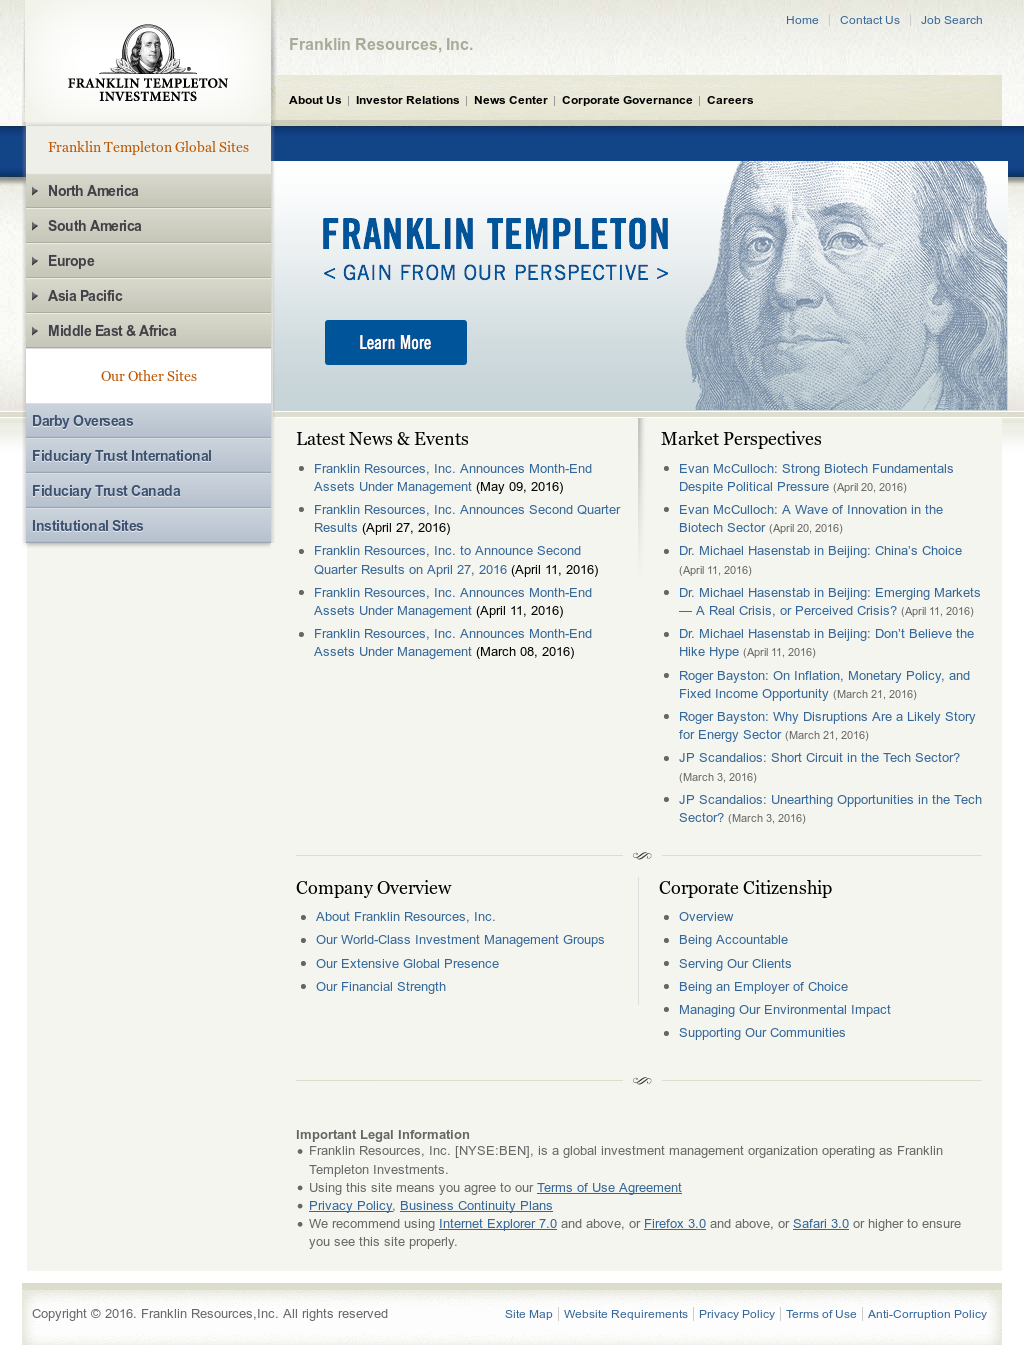 Franklin Templeton Investments Competitors, Revenue and Employees